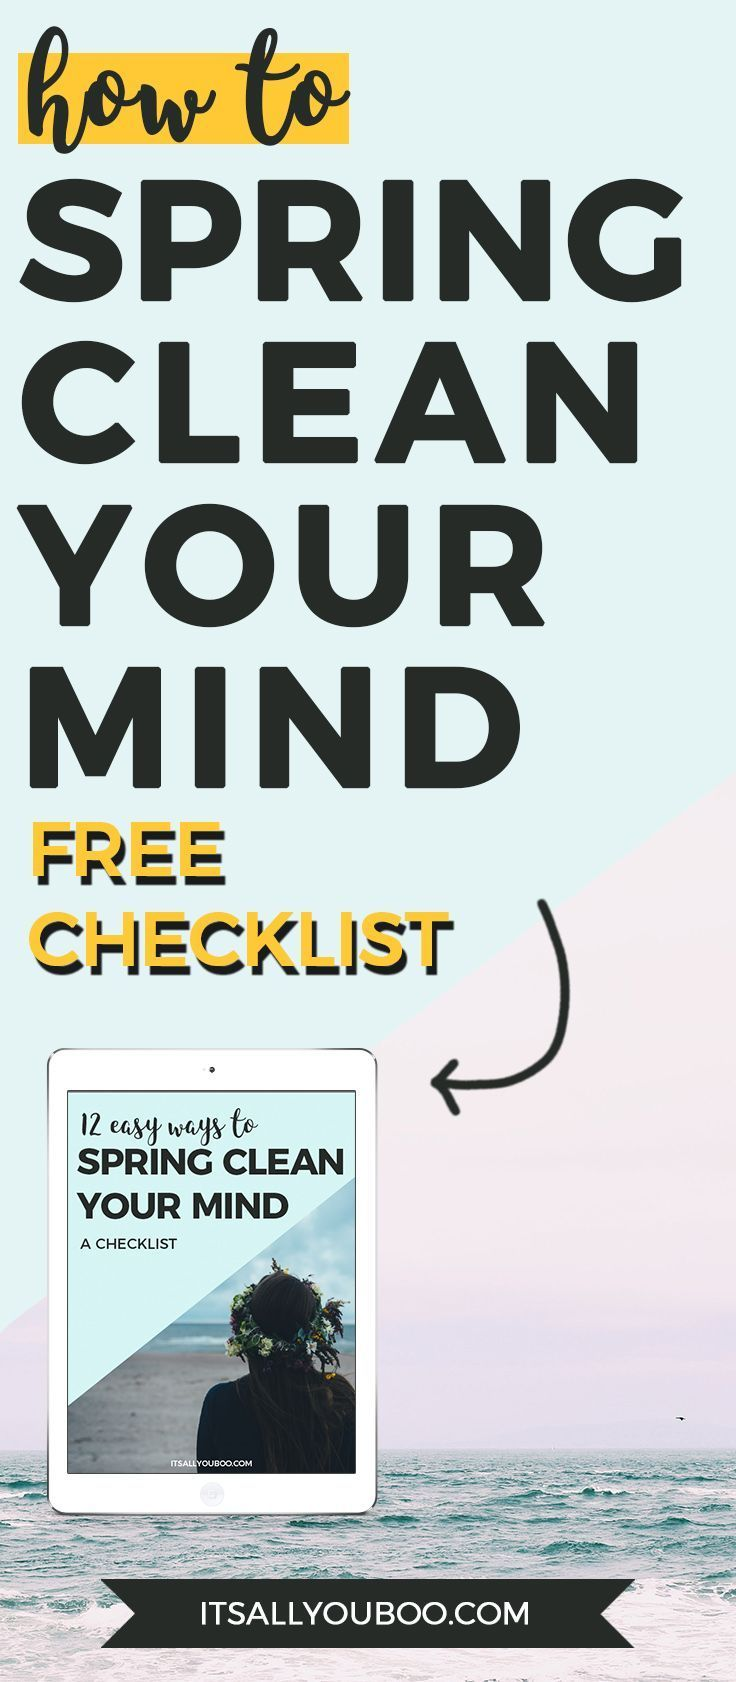 It's time to spring clean your mind and jumpstart your life for success. Get your free checklist with 12 easy ways to spring clean your mind.